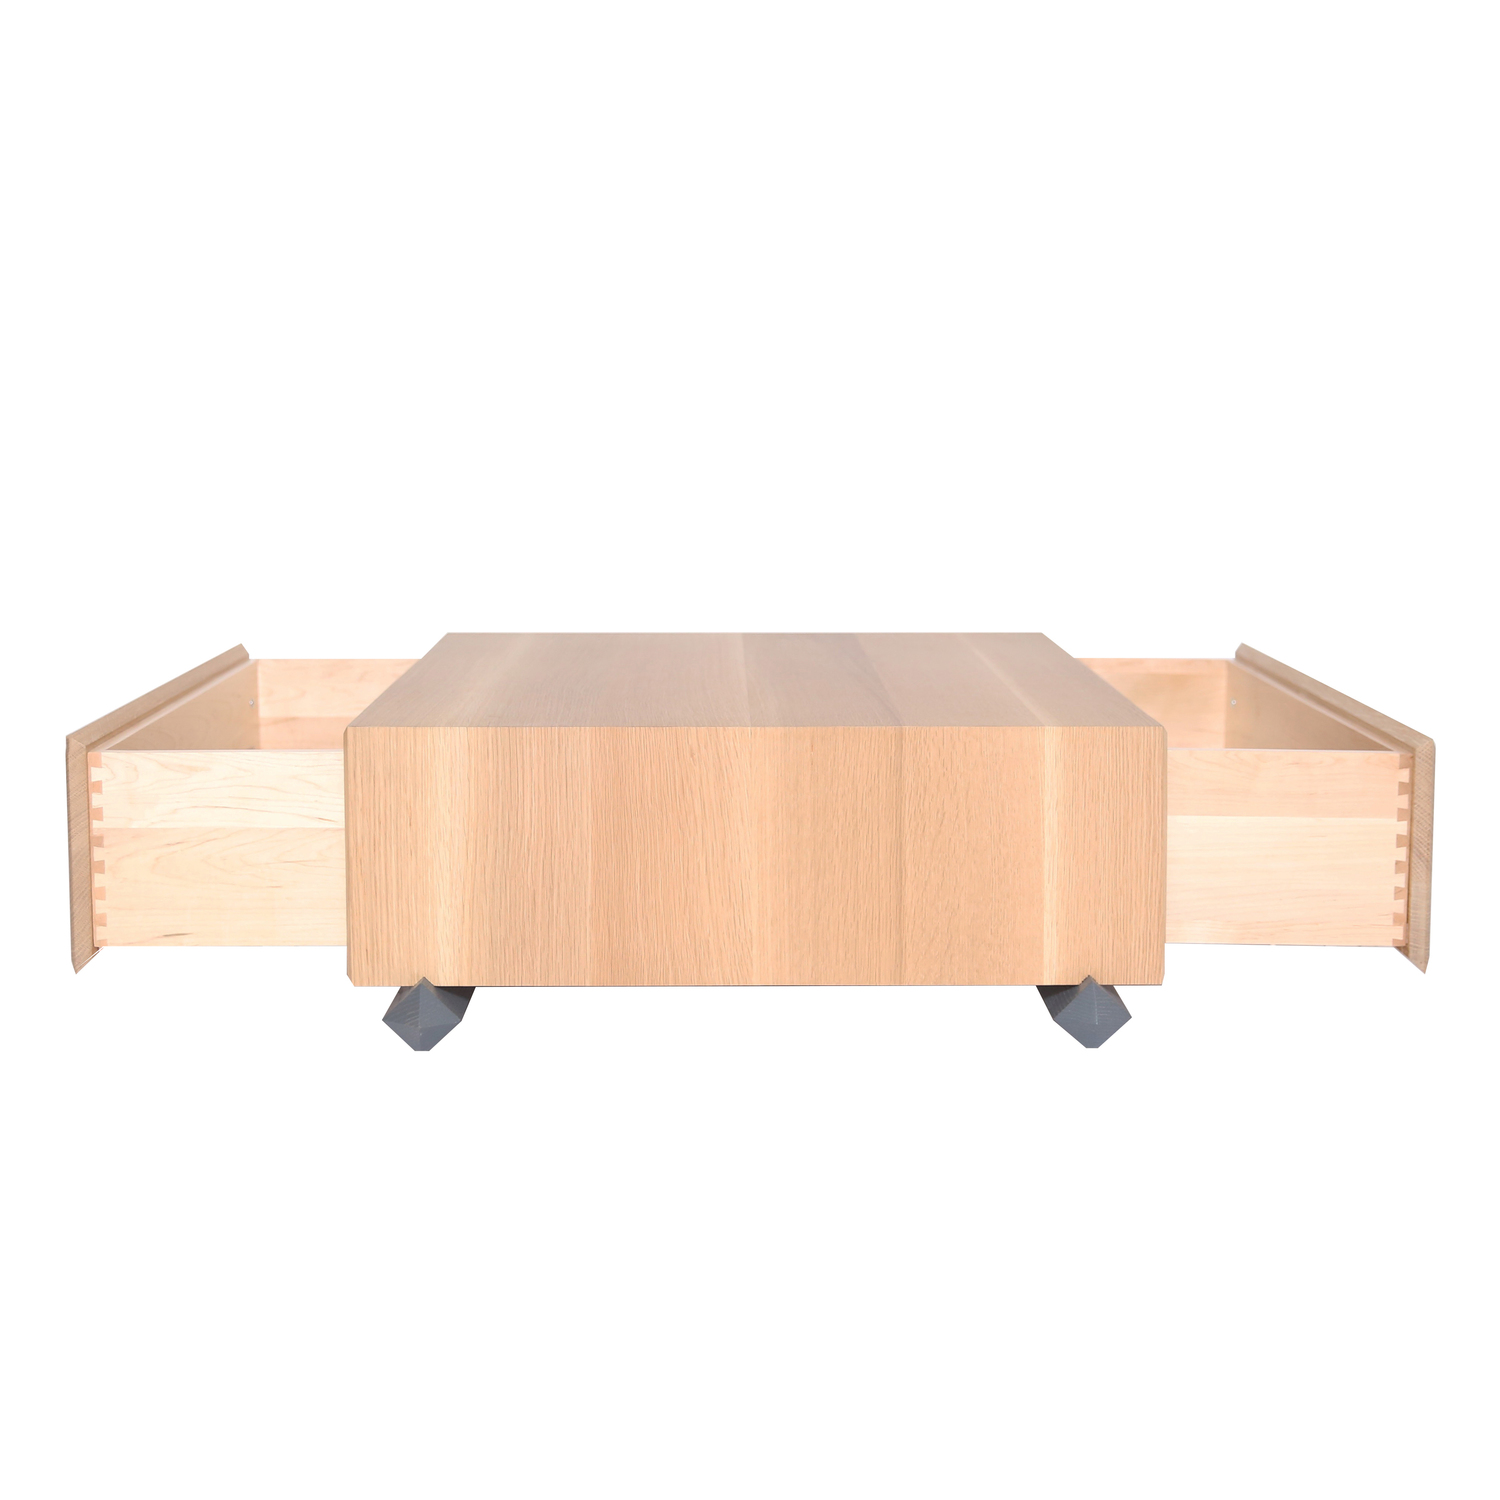 Stack coffee table drawers open